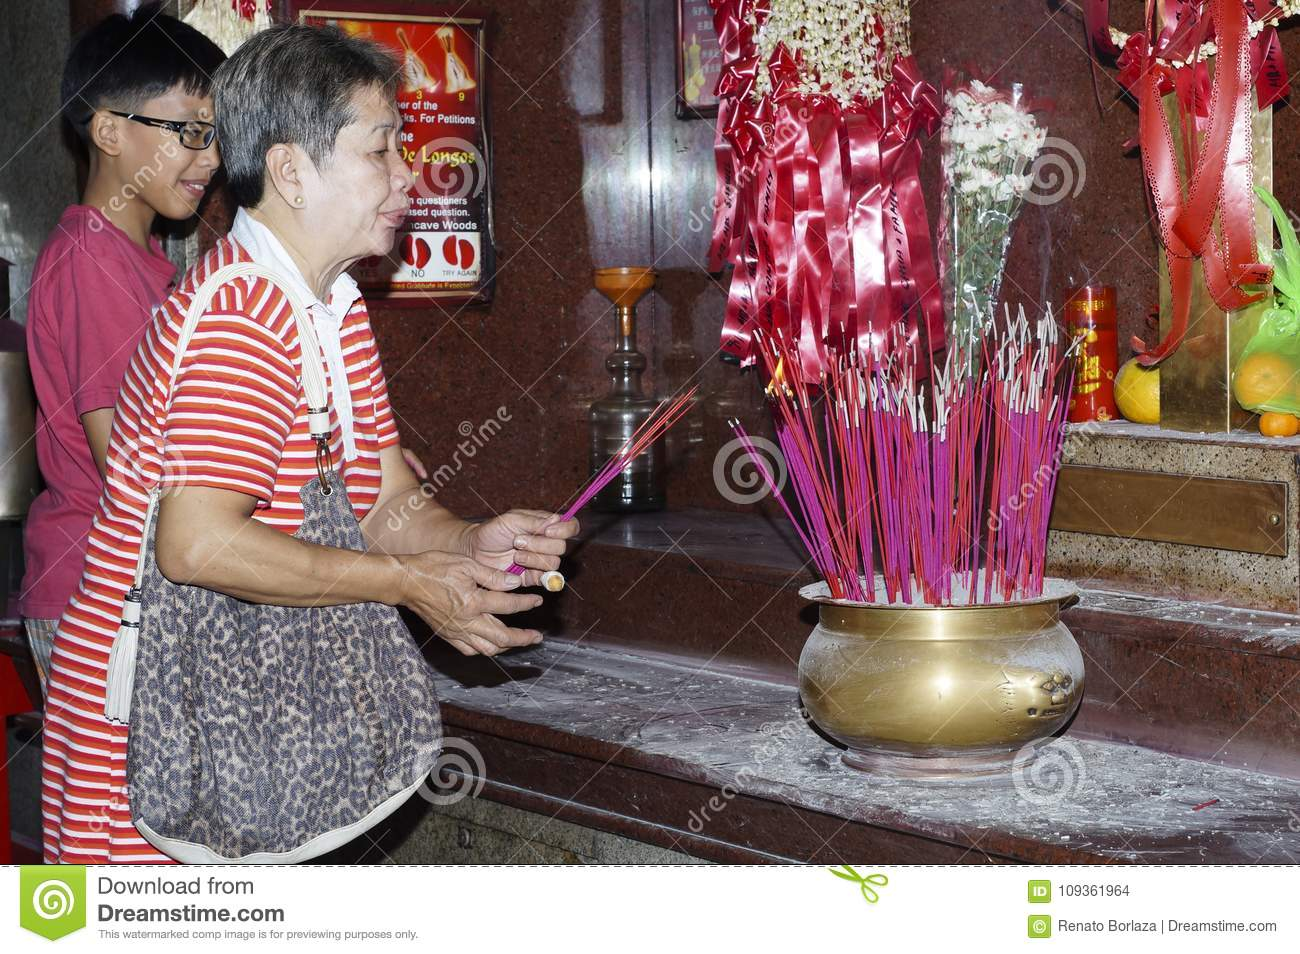 Woman light candle and jots stick to pray for departed relatives in Chinese temple in Manila